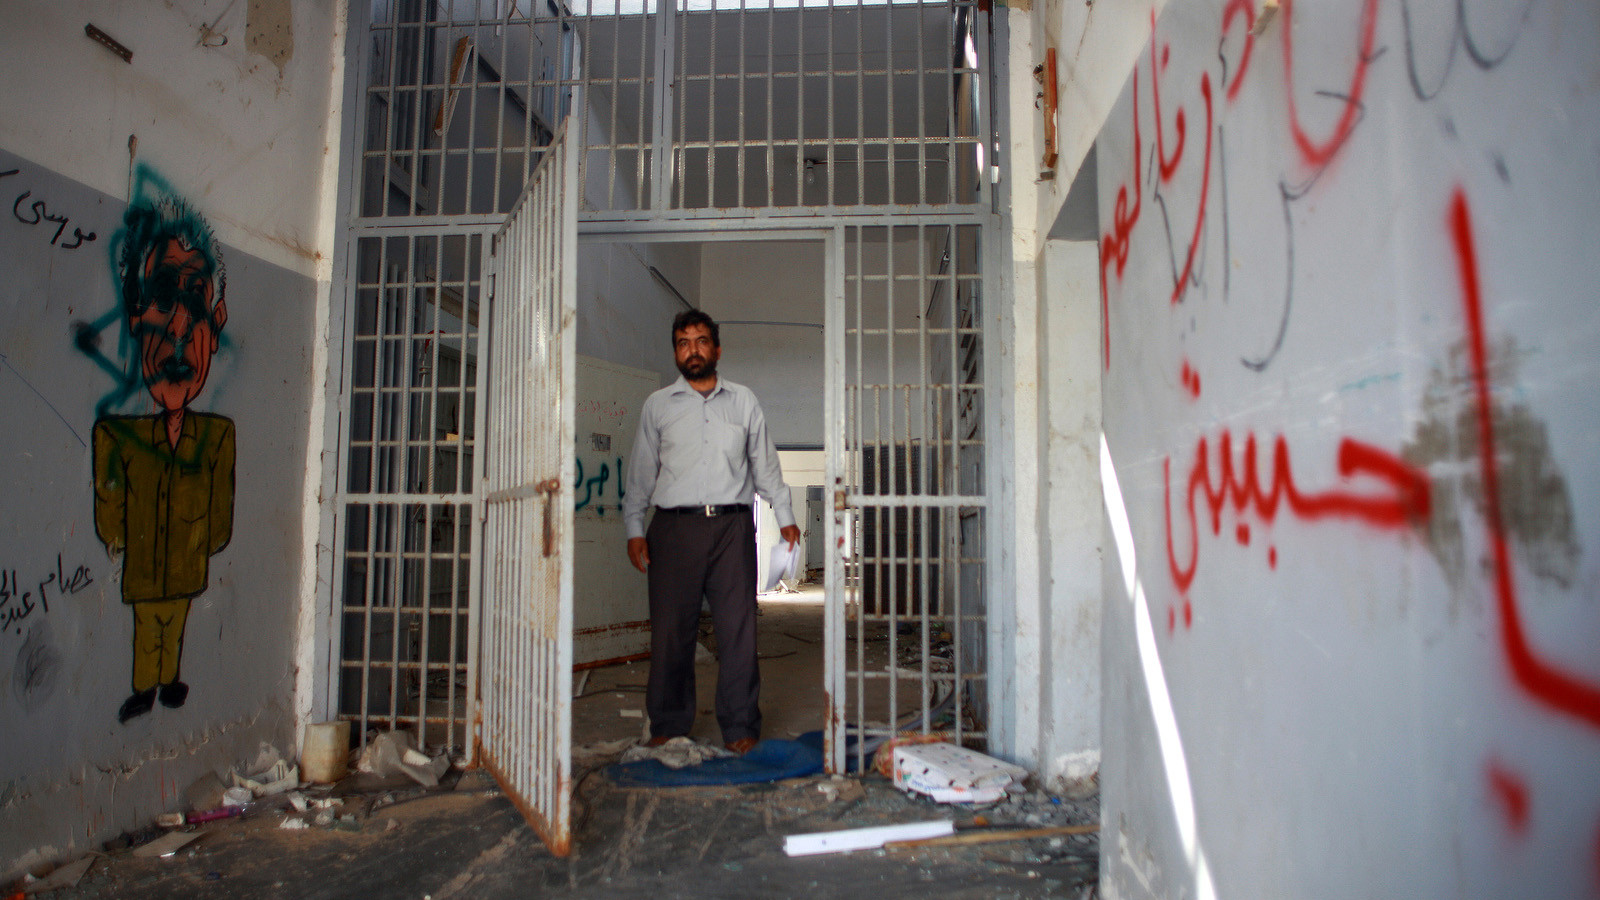 Former inmate on a return visit to his cell at Tripoli's Abu Salim prison where he was held for several years. October 2011